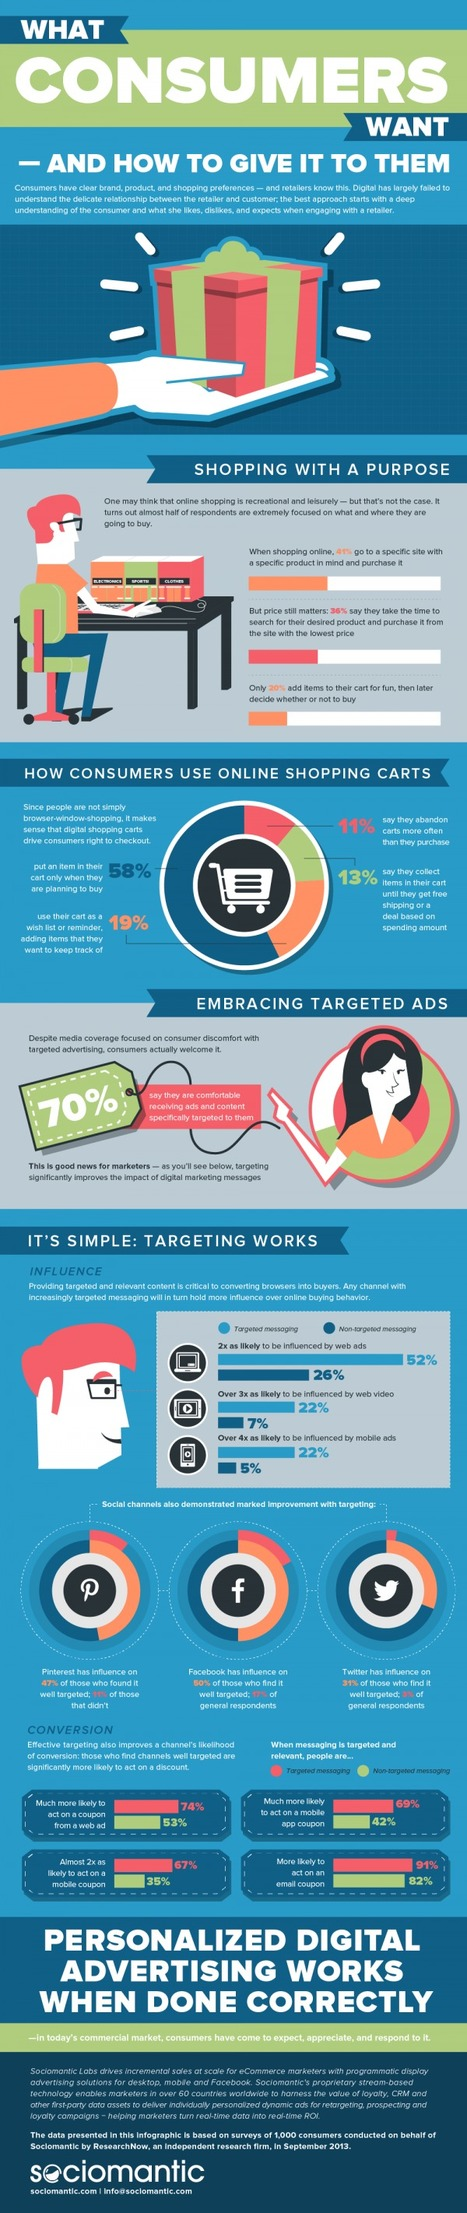 E-commerce survey on buyer behaviour and ad preferences [Infographic} - Smart Insights Digital Marketing Advice | Consumption Junction | Scoop.it